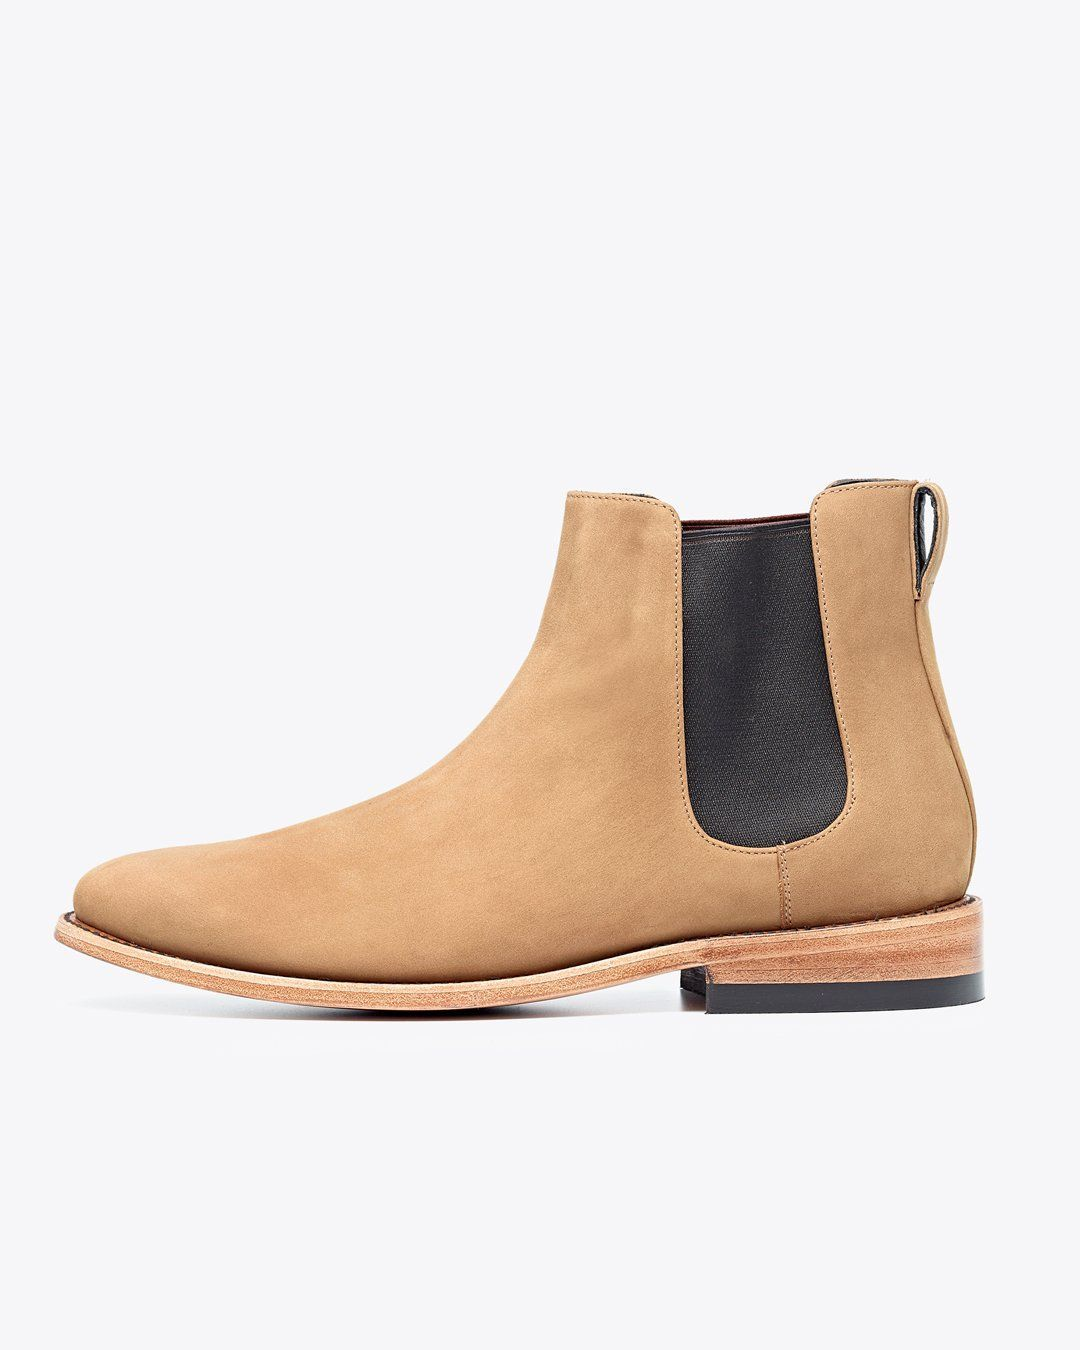 a48a73d266ee9 Nisolo Men's Chelsea Boot Stone | Ethically Made